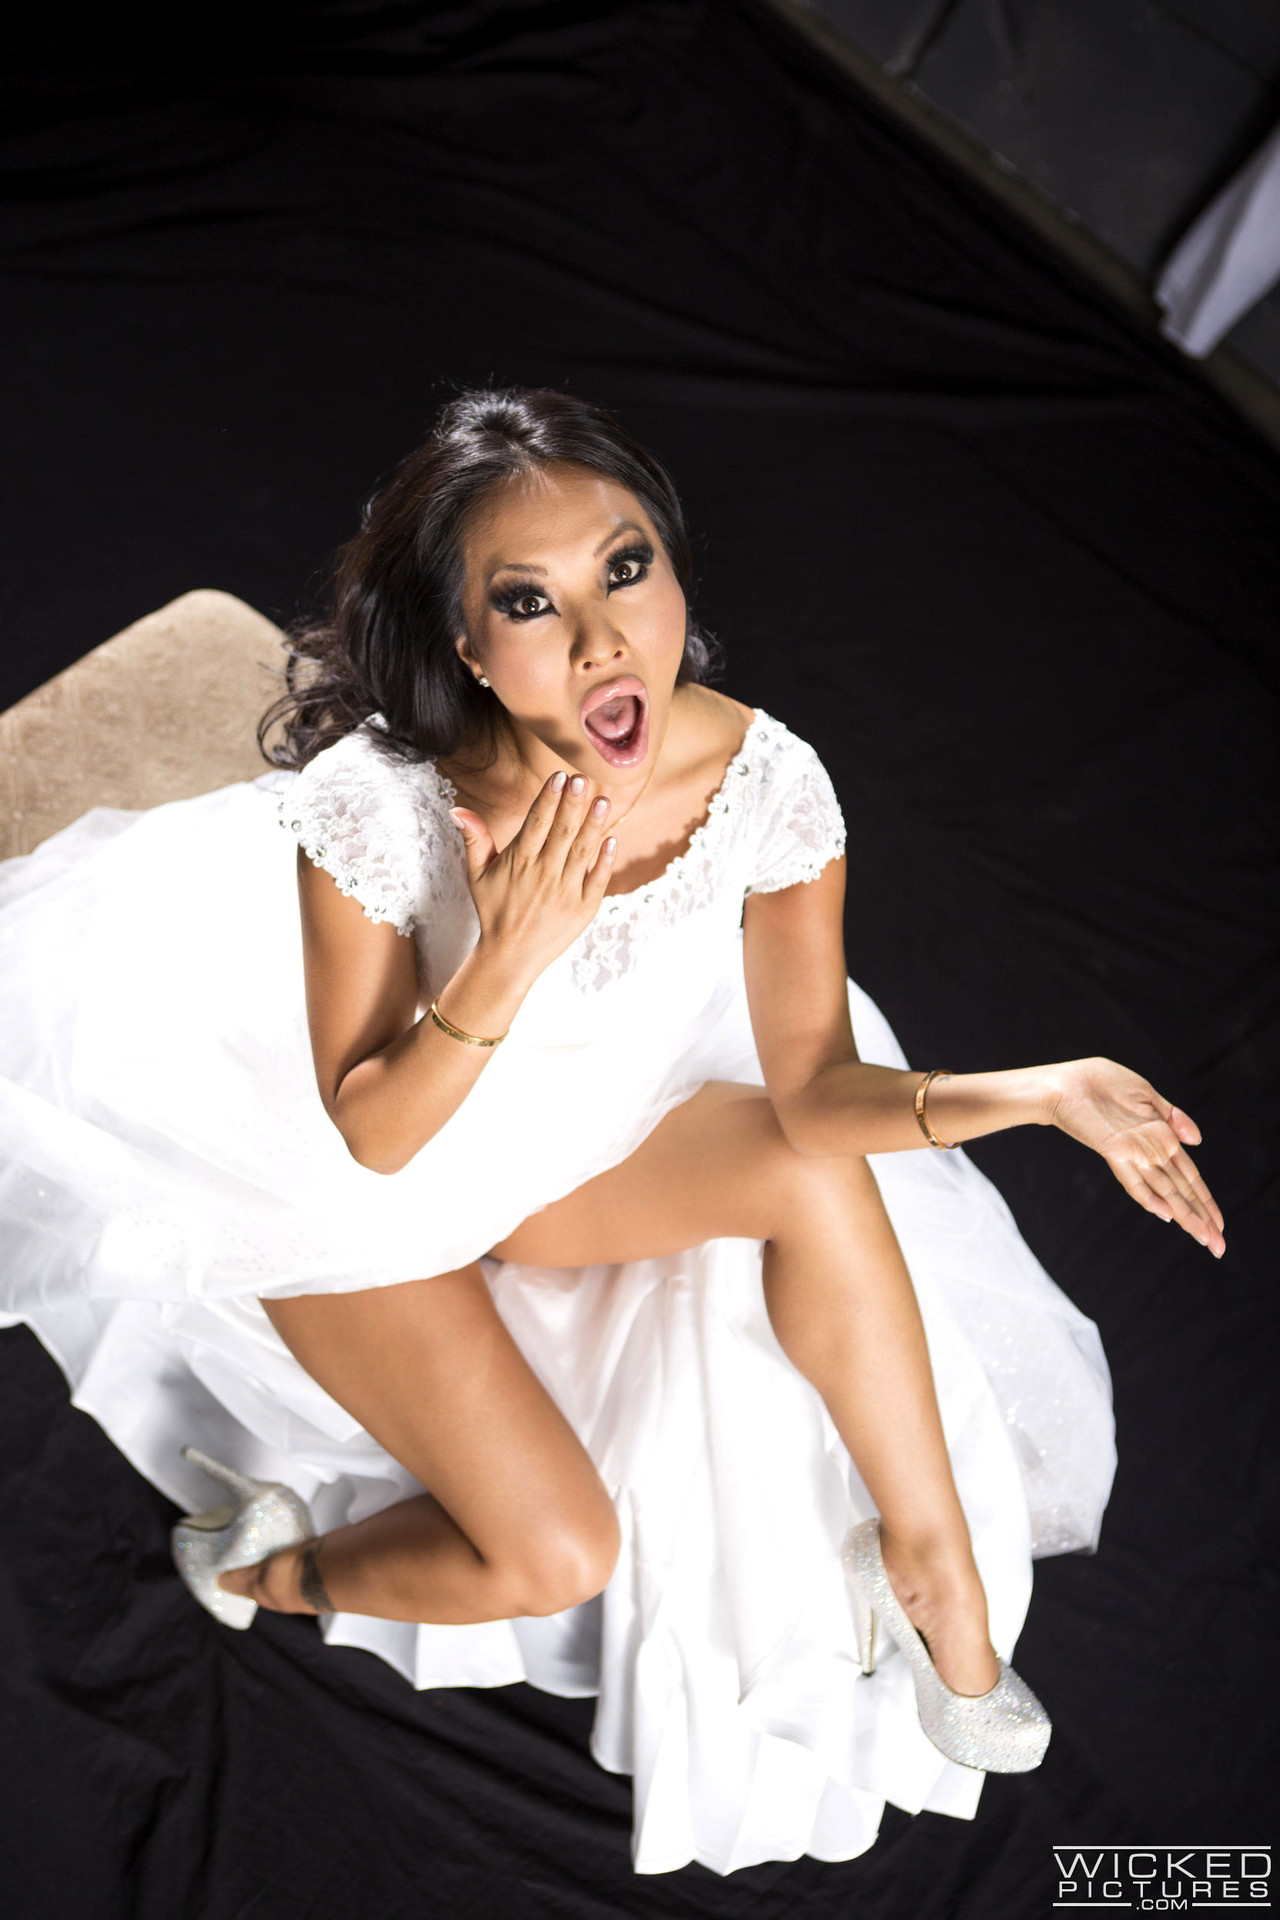 Babe Today Wicked Pictures Asa Akira Optimized Threesome